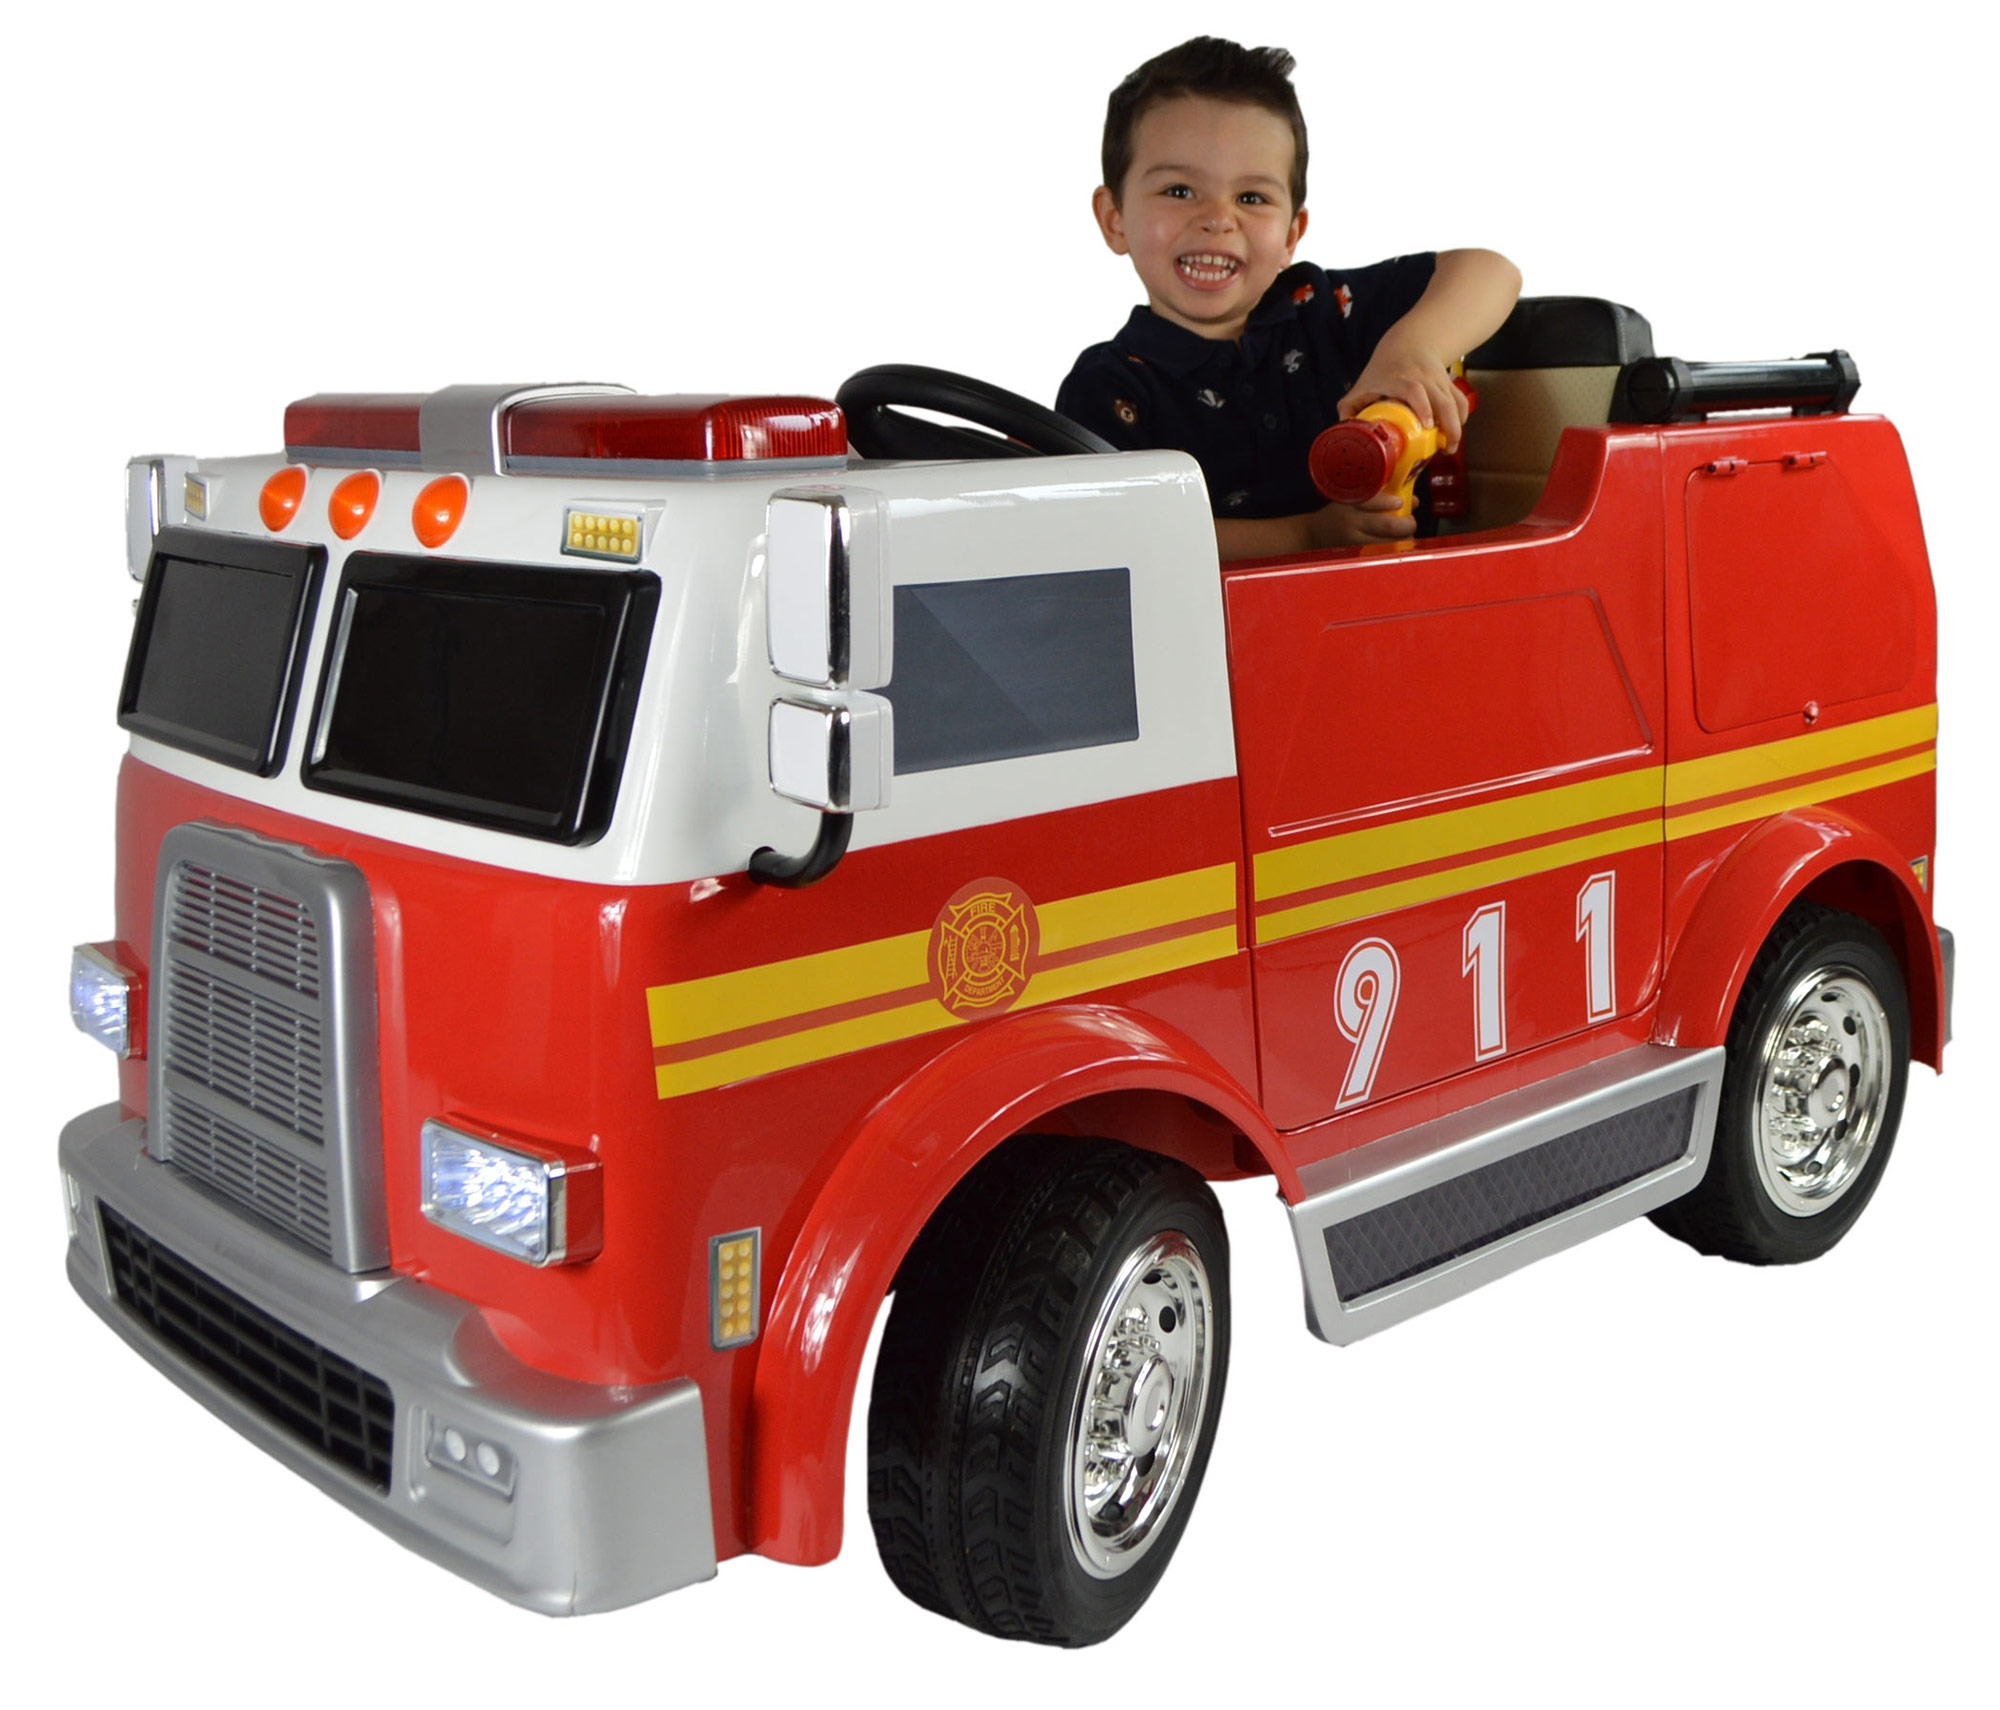 Electric Ride On Cars For Kids Upgraded Deluxe Hand Painted Fire Engine